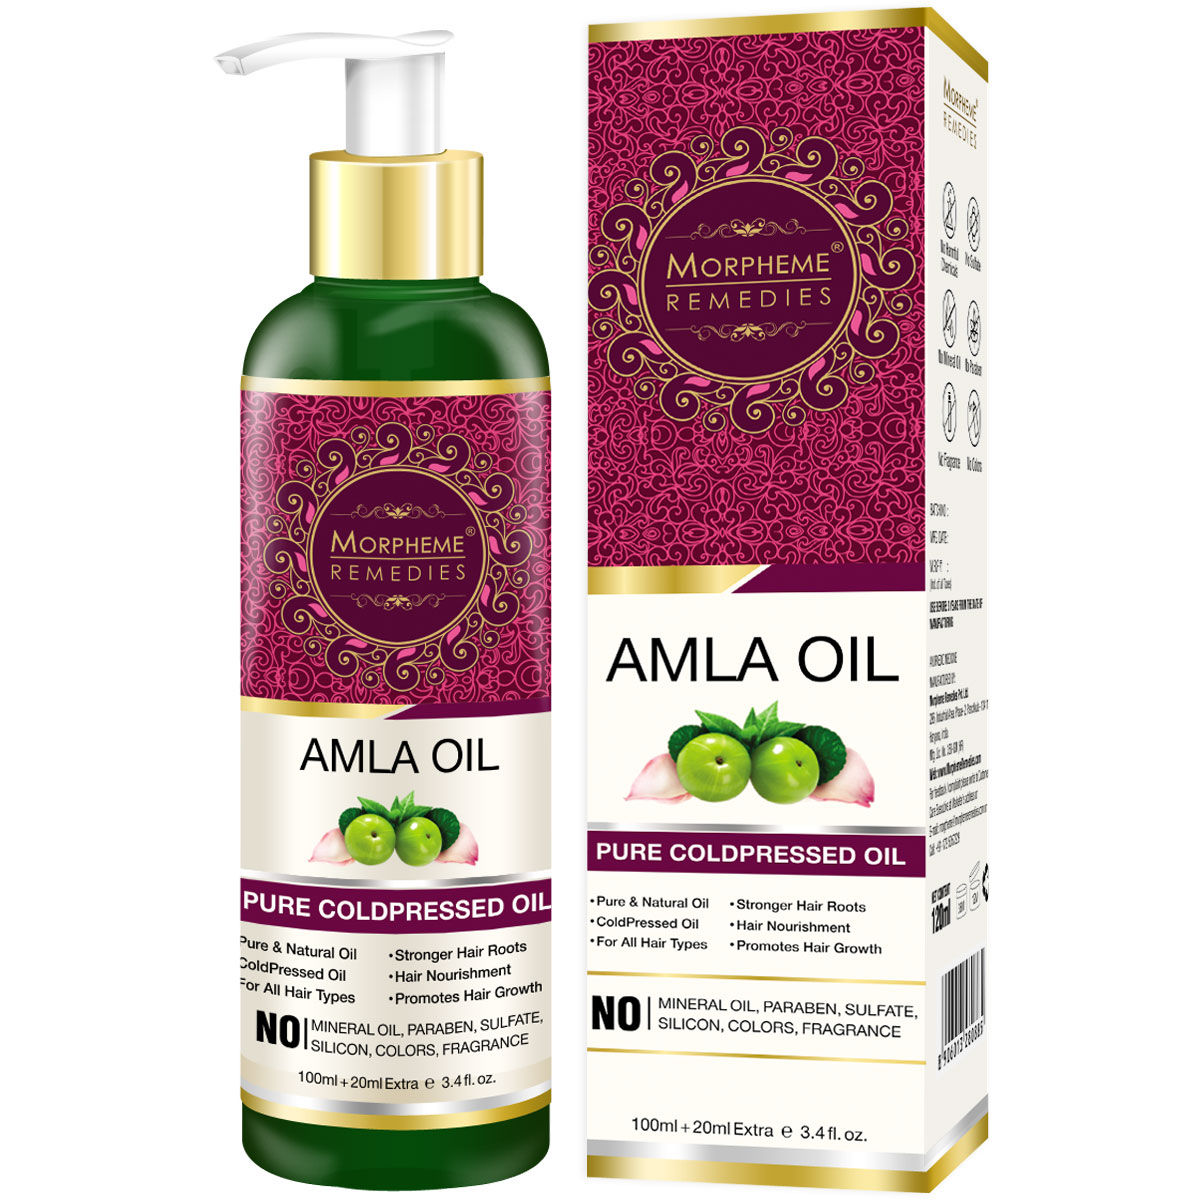 Morpheme Remedies Pure Coldpressed Amla Hair Oil